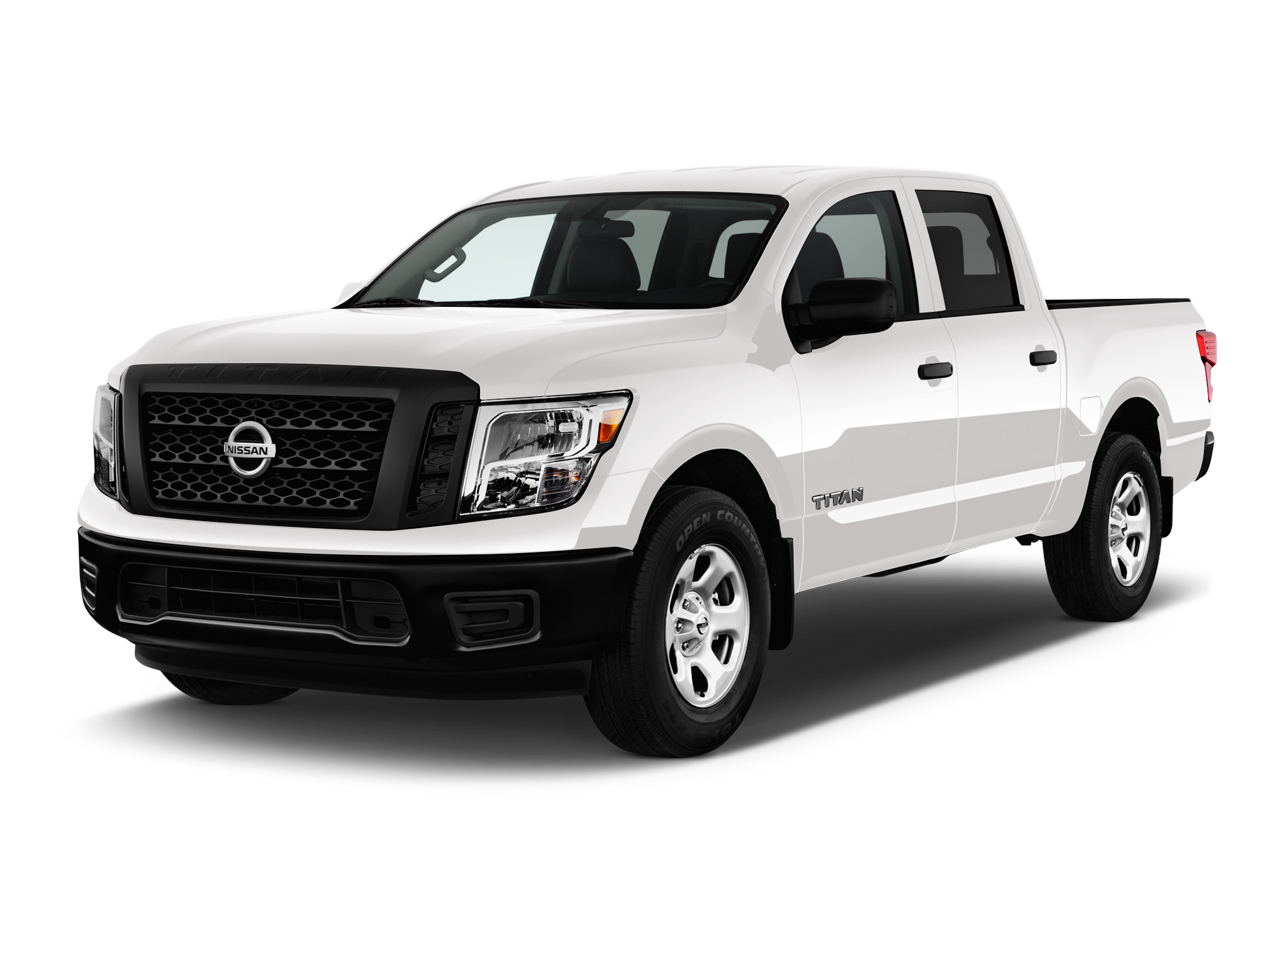 new 2017 nissan titan s keyport nj near toms river nj pine belt nissan. Black Bedroom Furniture Sets. Home Design Ideas